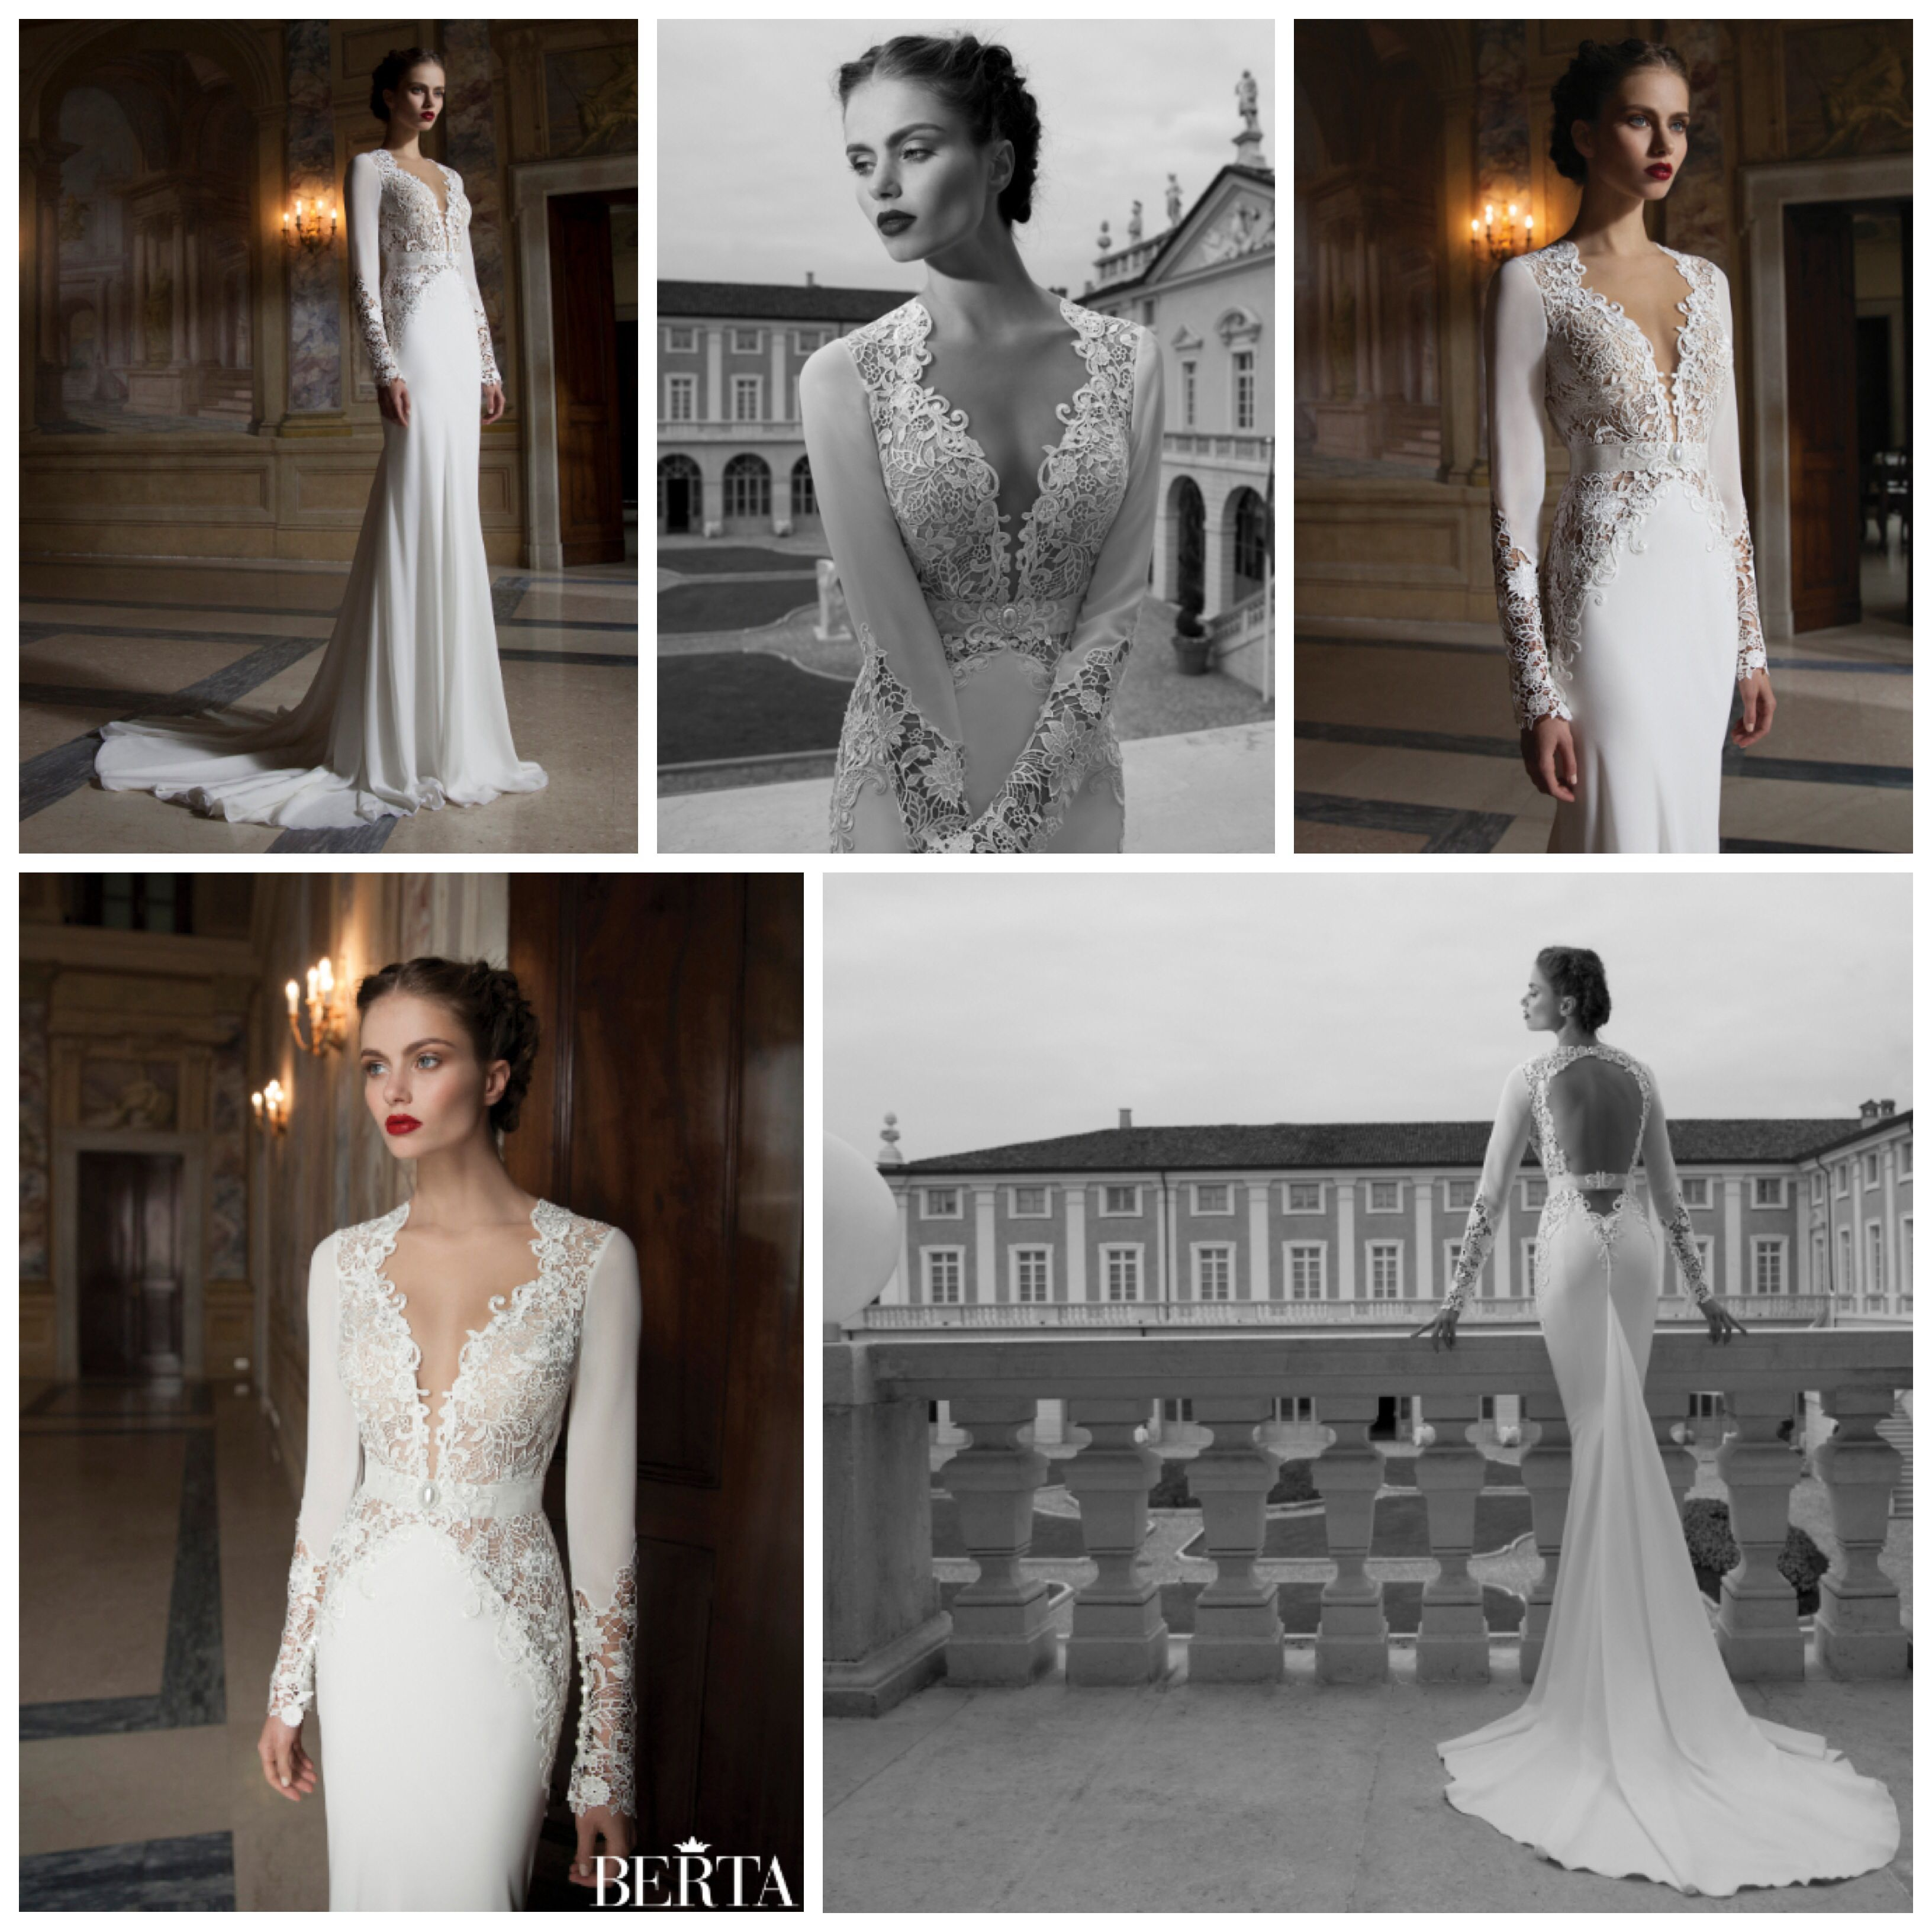 Berta bridal collection this dressus features long sleeves